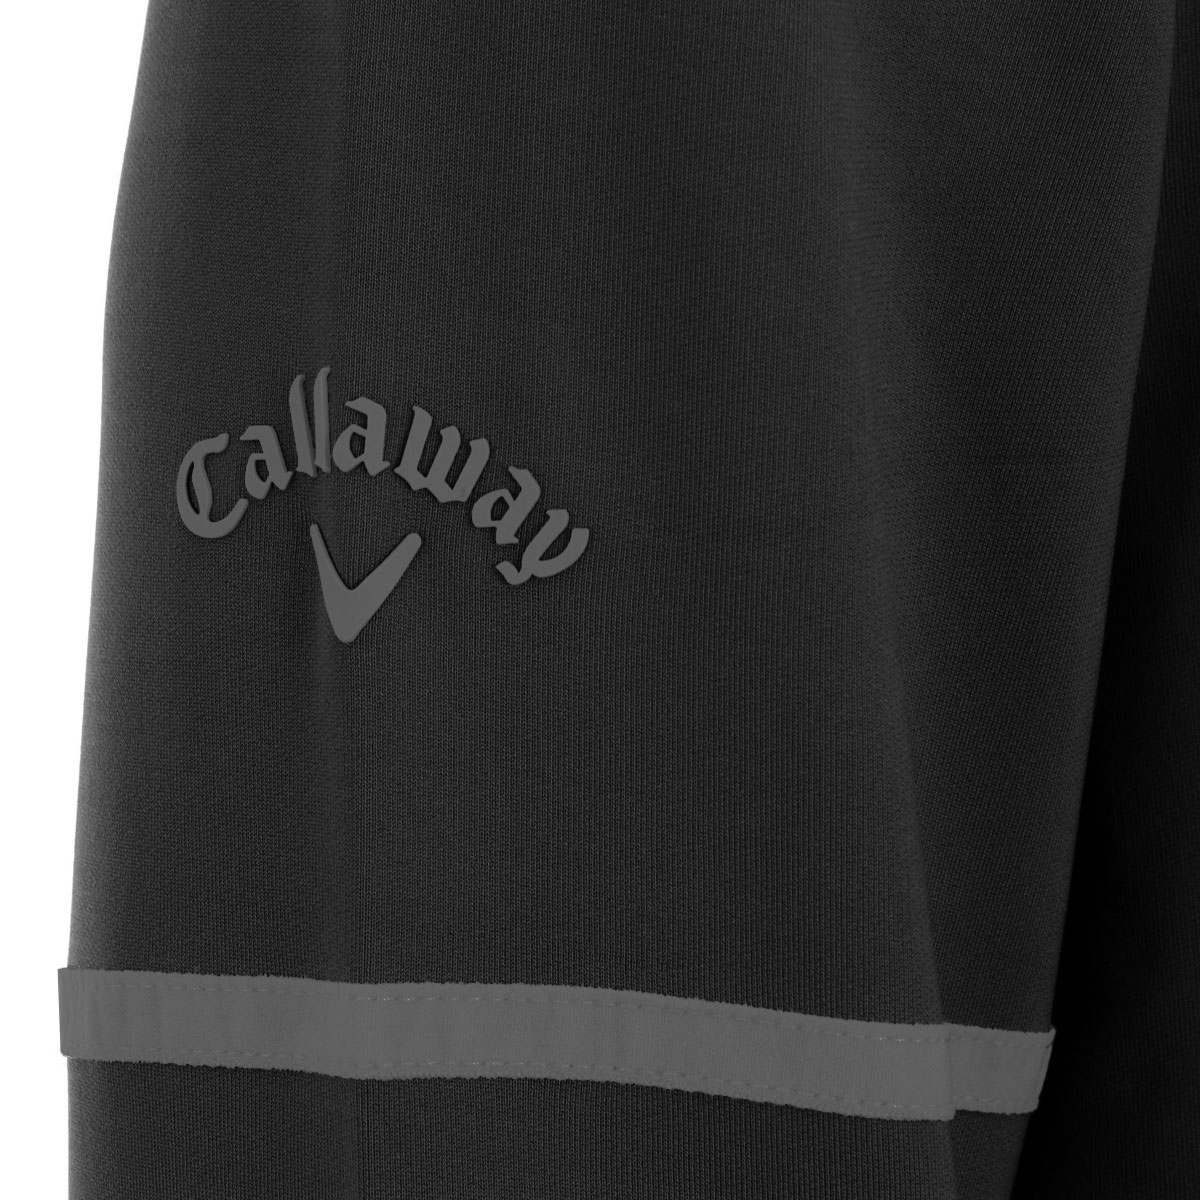 Callaway-Golf-Mens-1-4-Zip-Mid-Layer-Sweater-034-Tour-Logo-034-Pullover-Jumper thumbnail 9